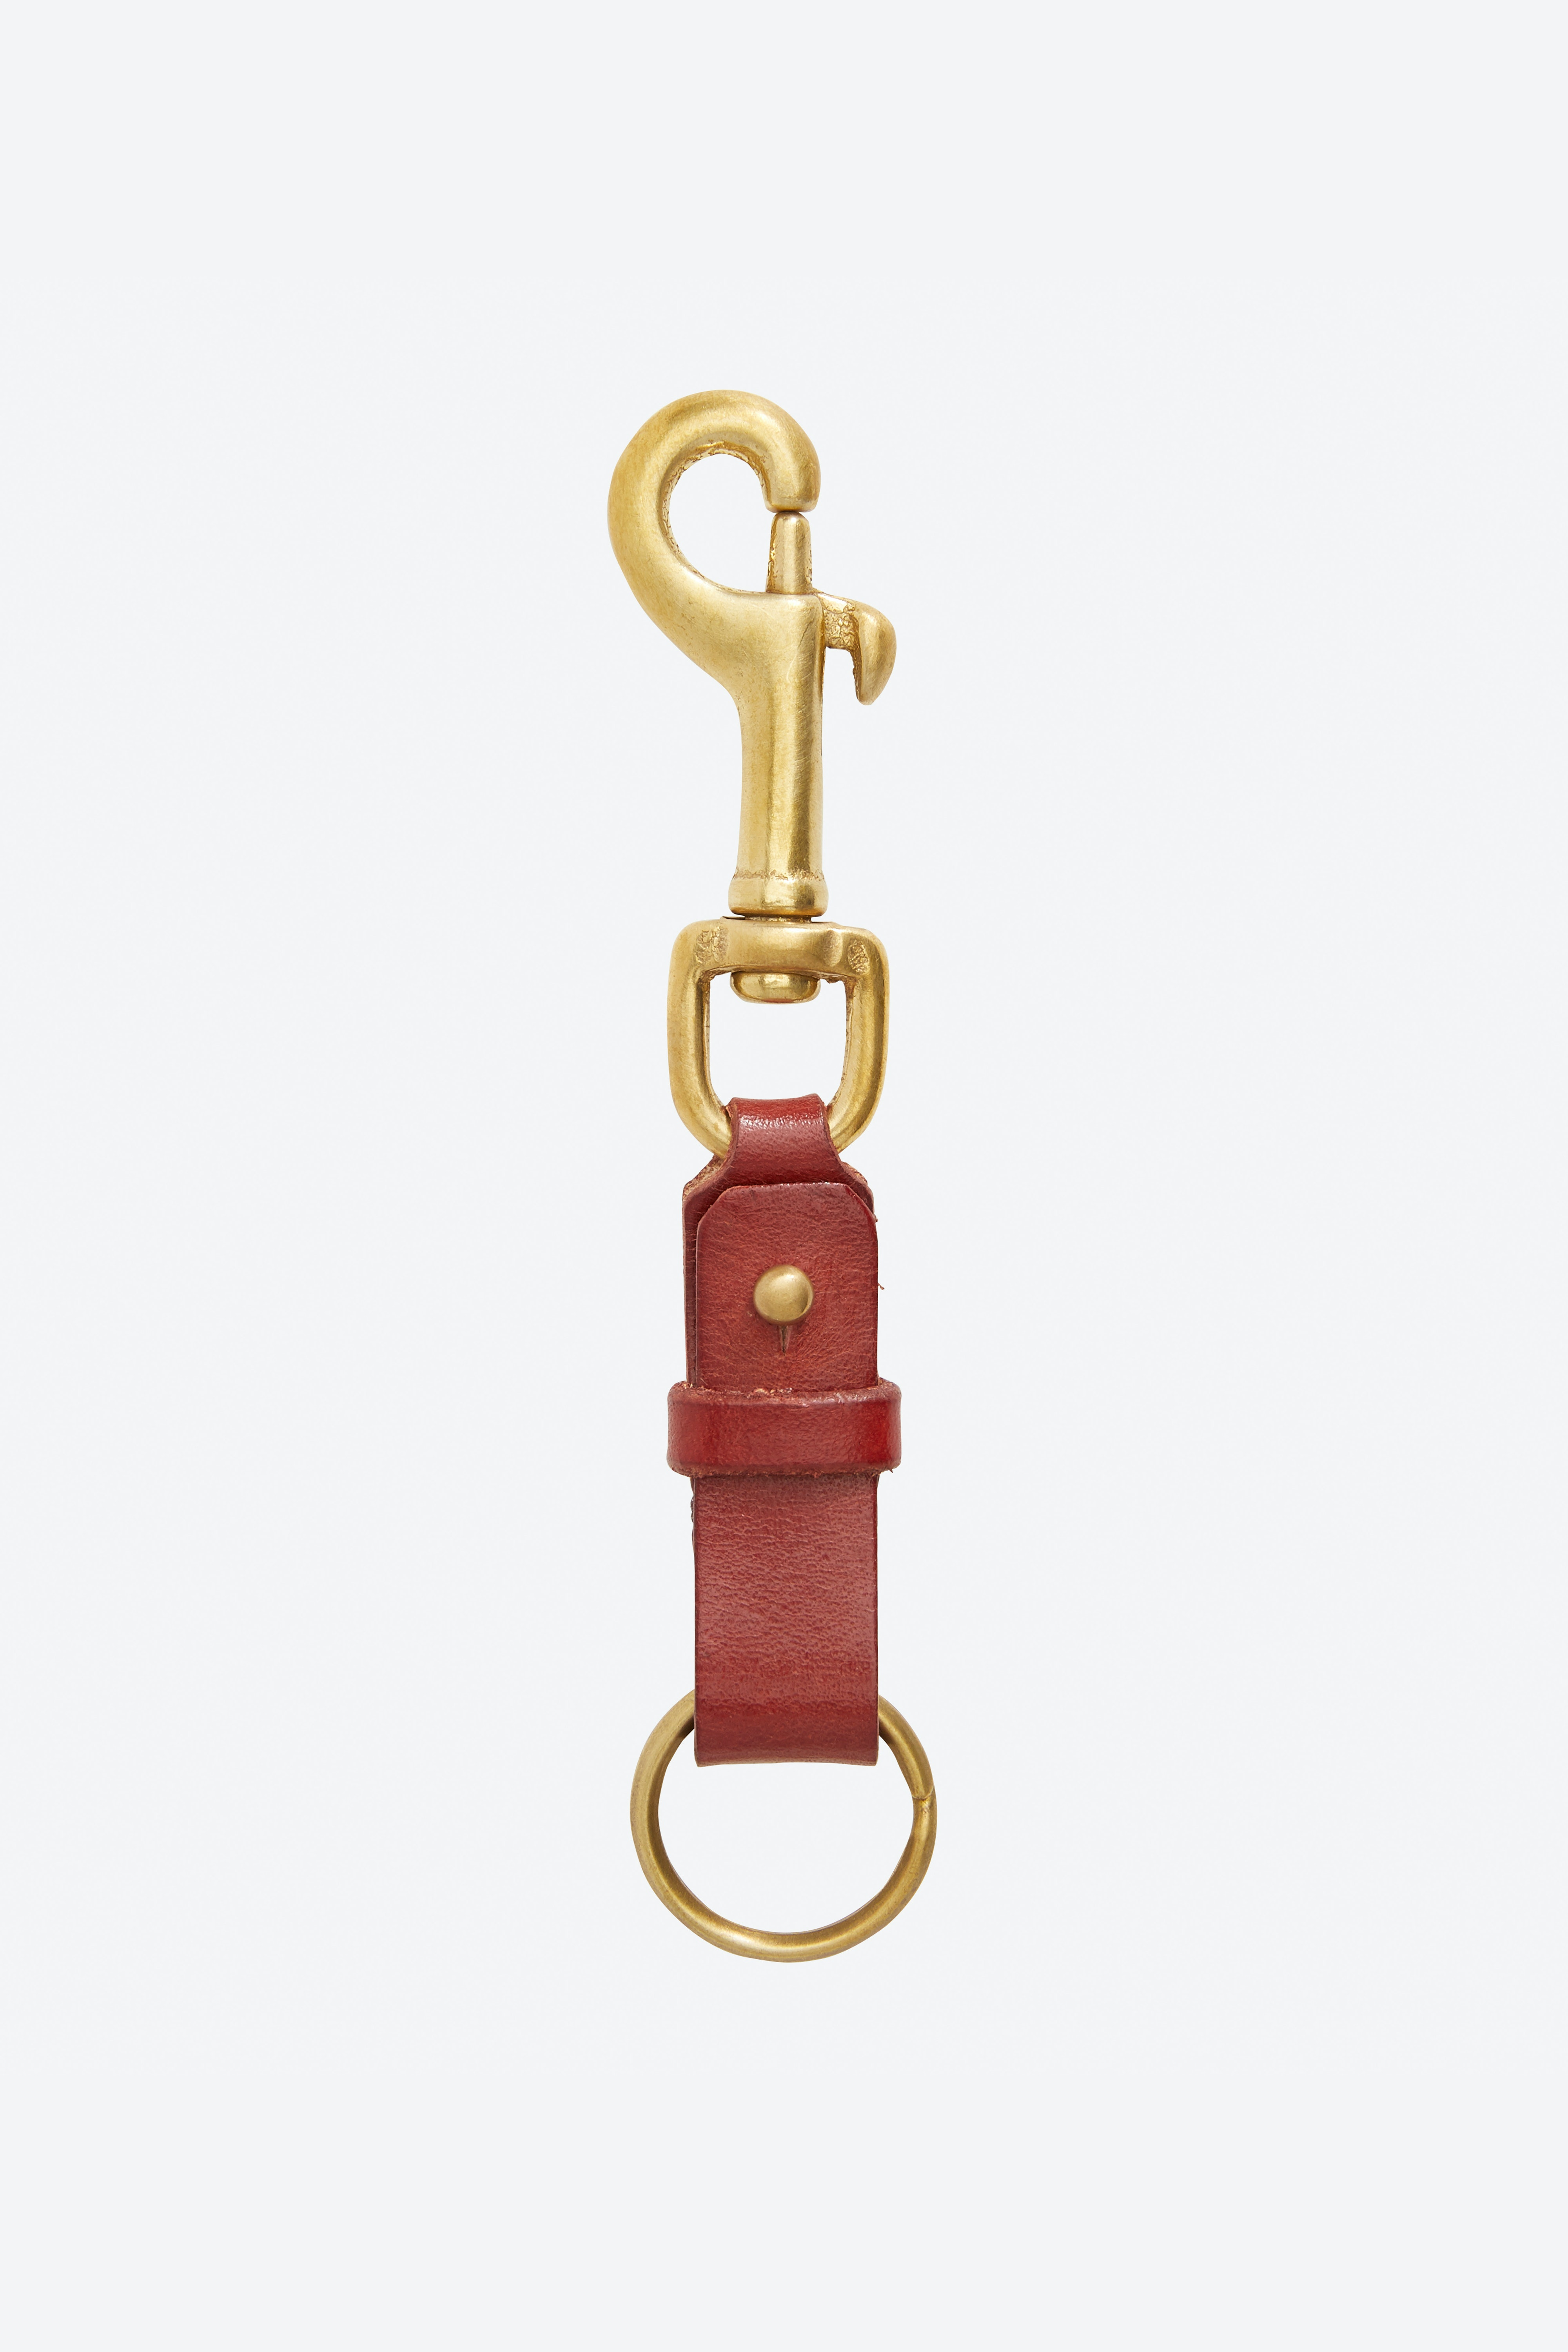 Maximum Henry X Bonobos Key Clip